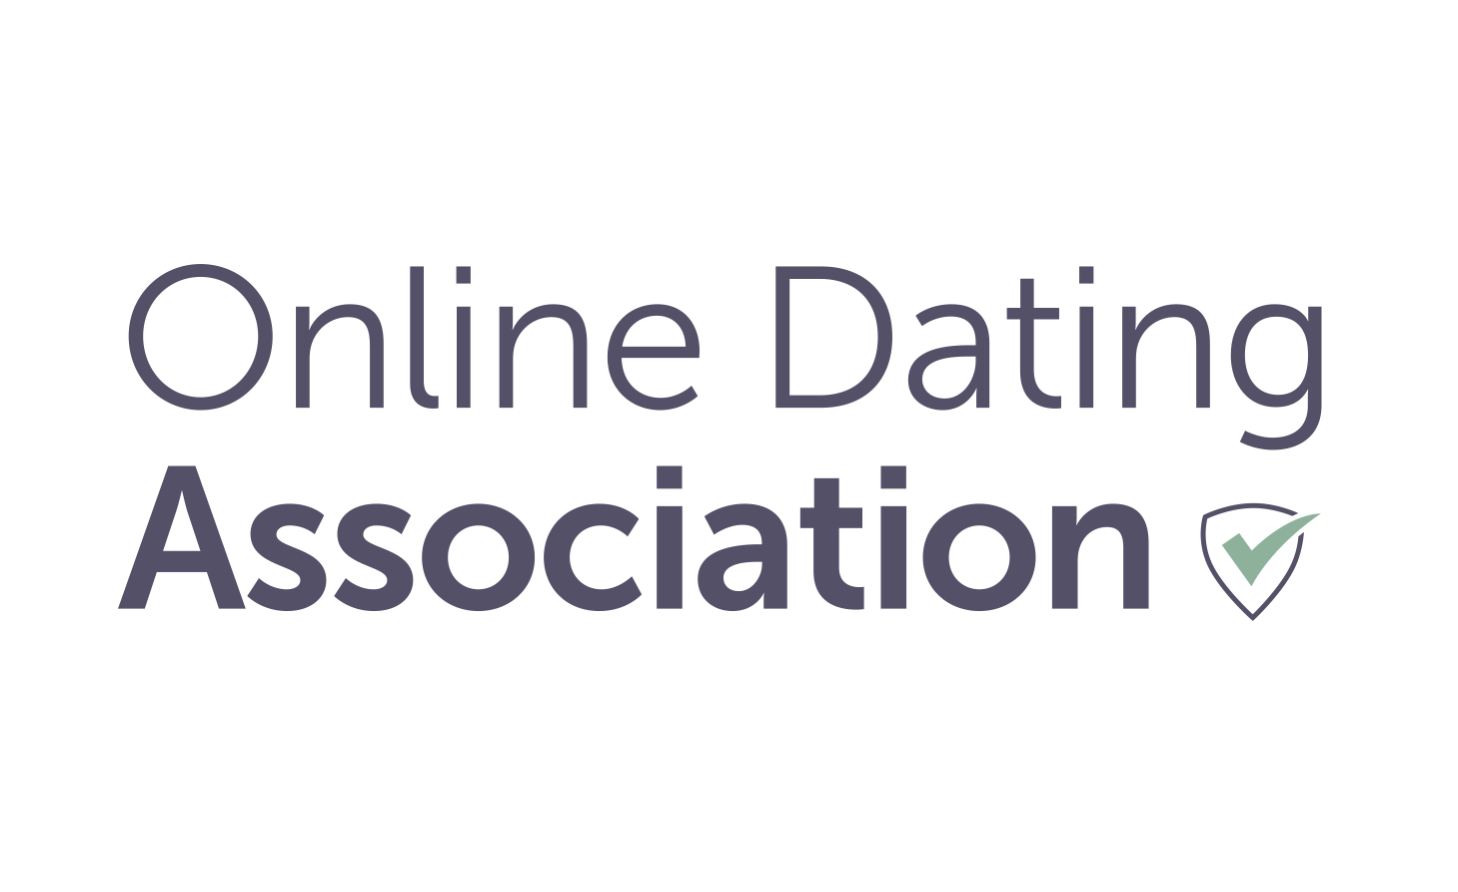 Should online dating be regulated